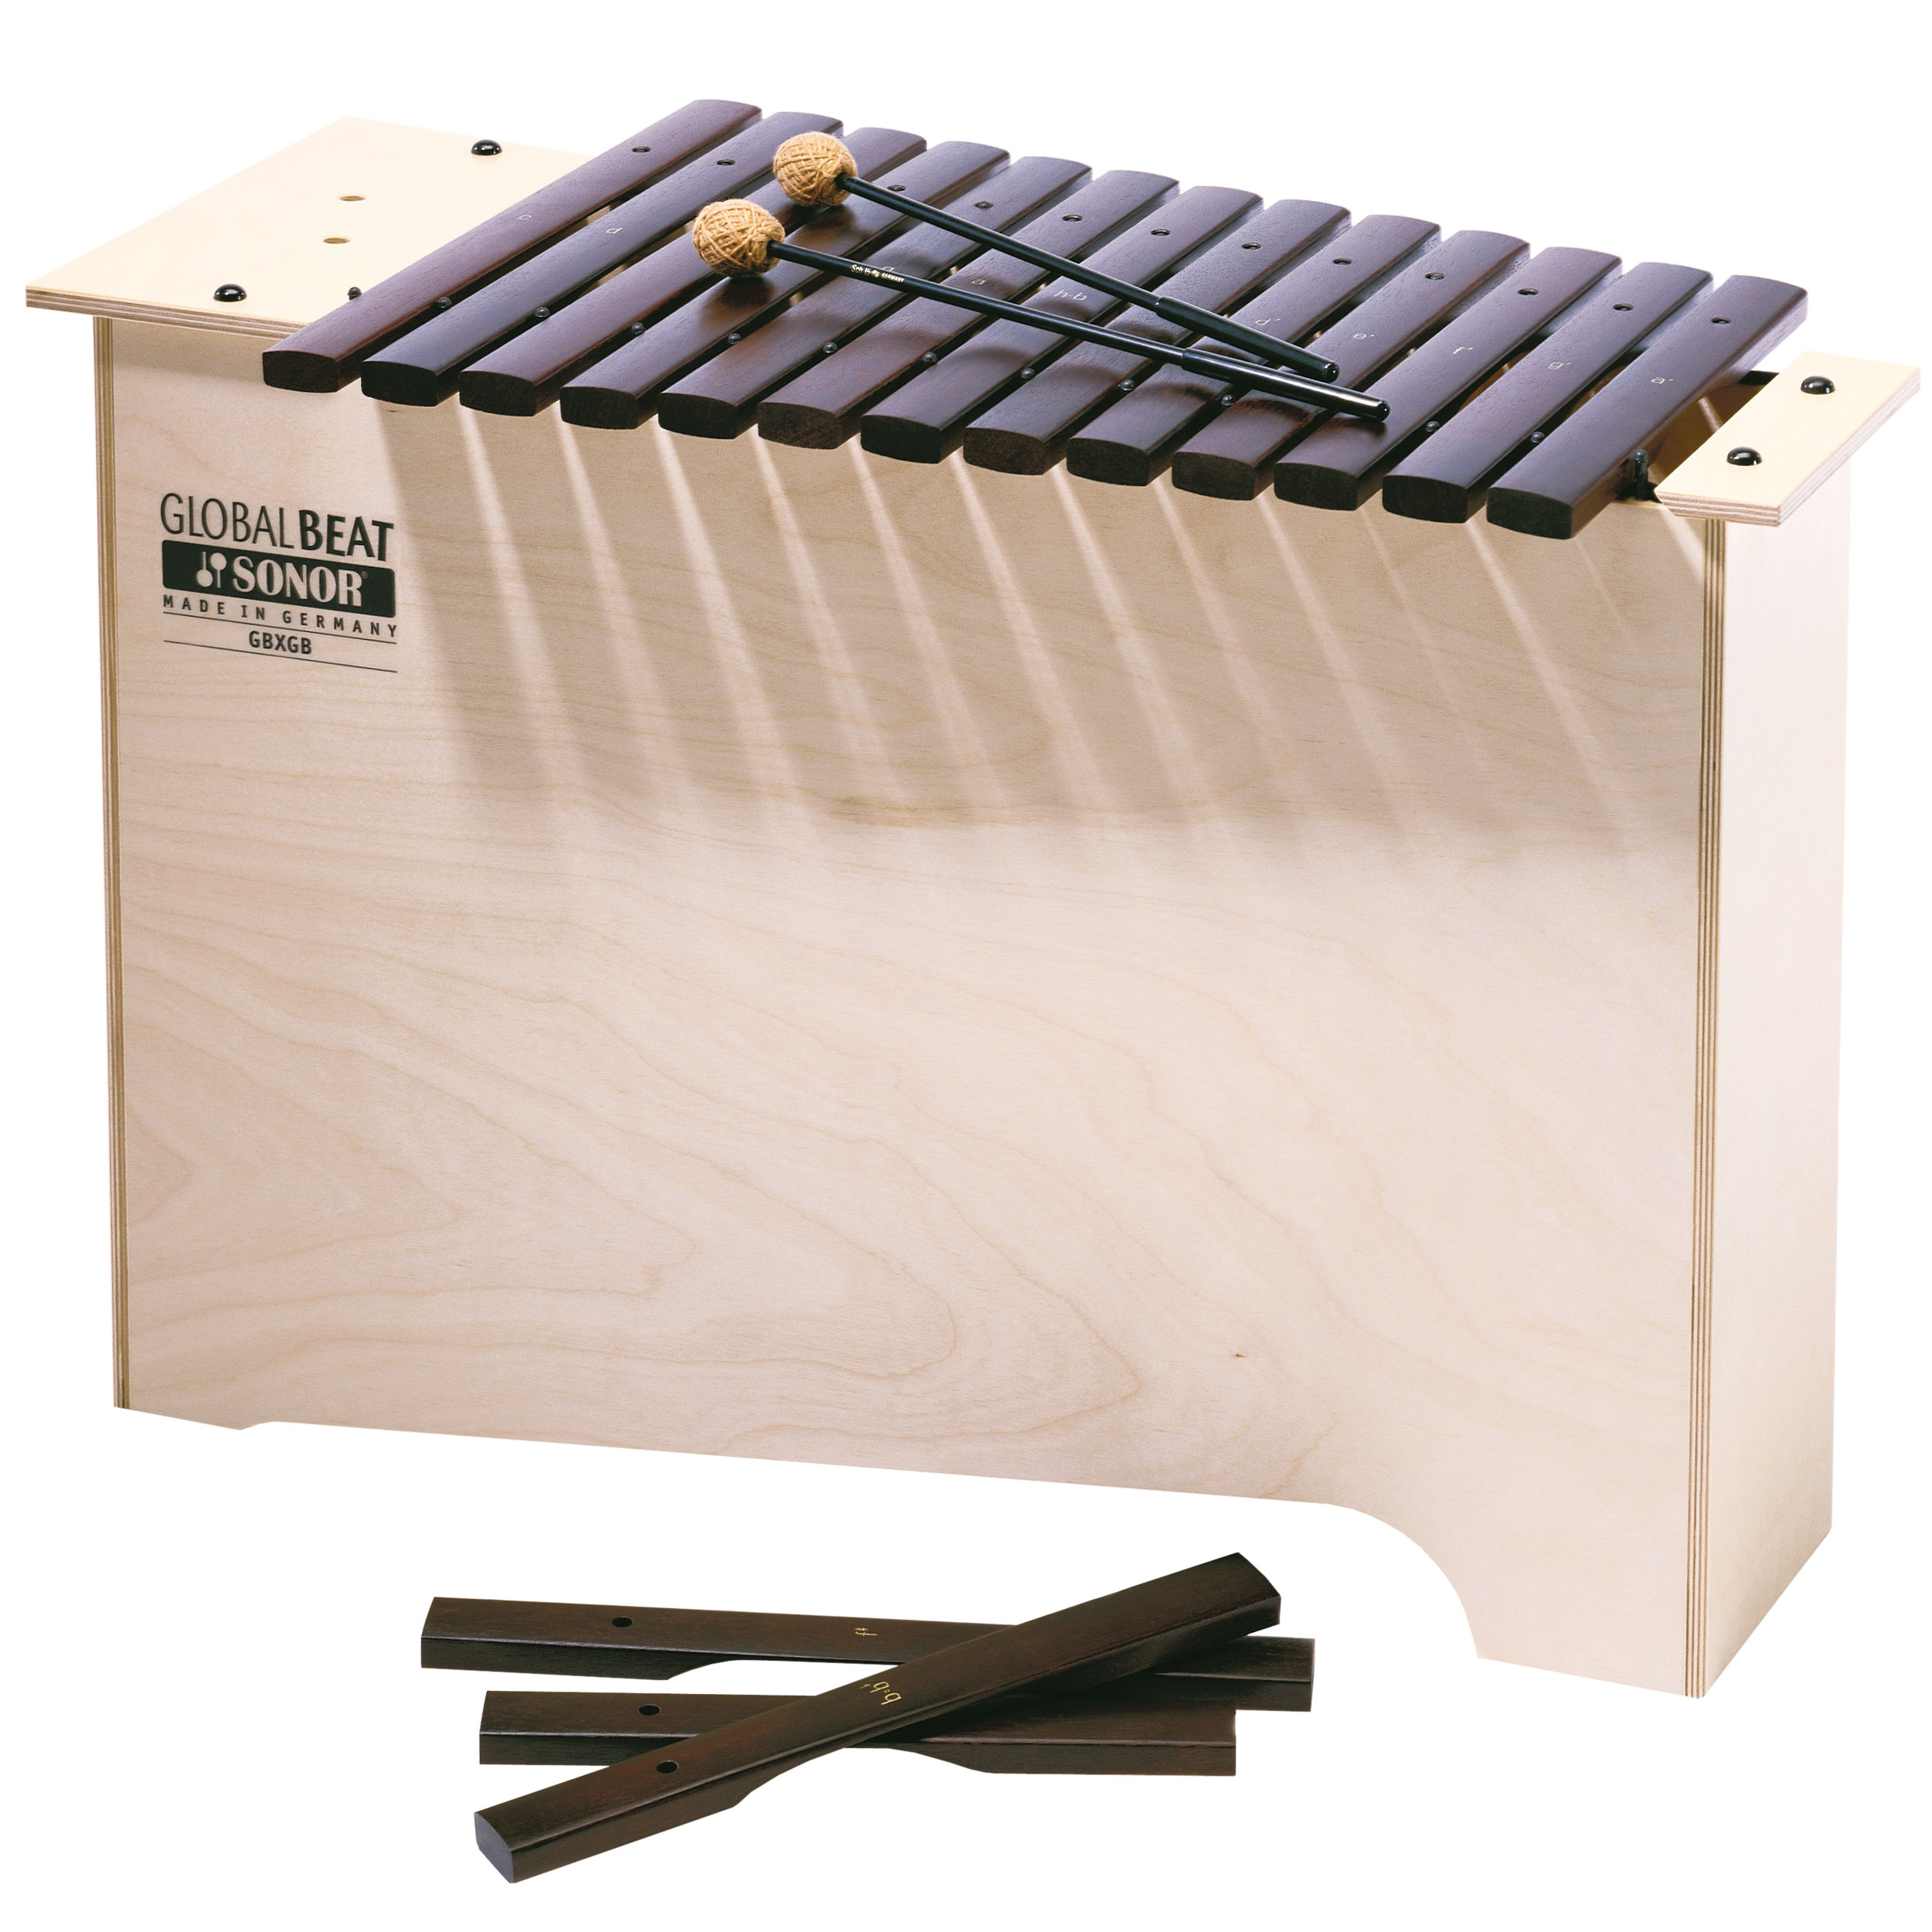 Sonor Orff Global Beat Sucupira Bass Diatonic Xylophone